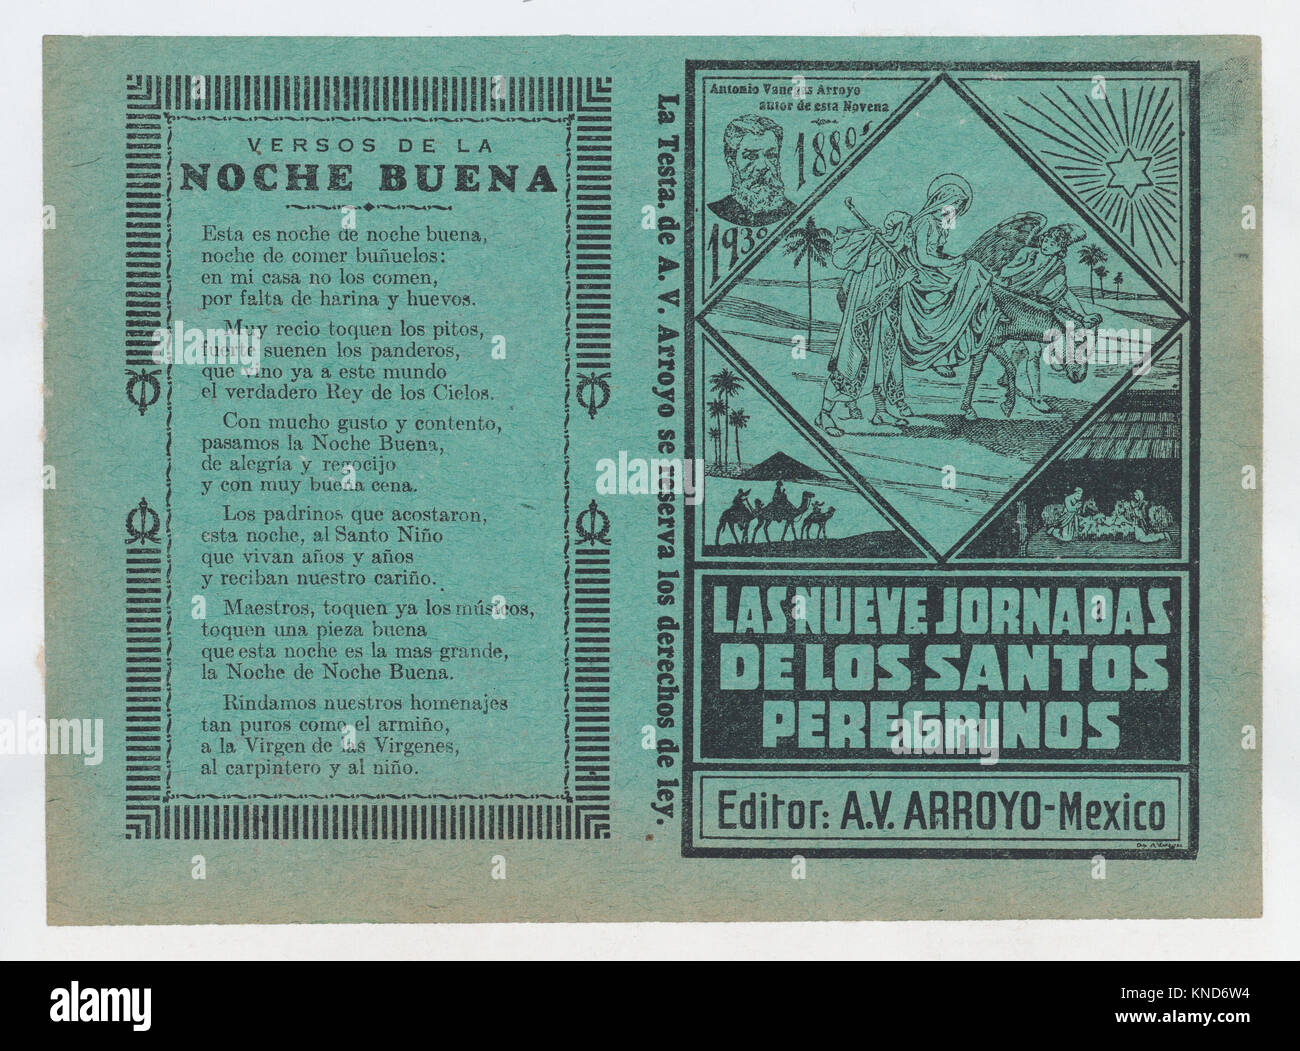 Cover for 'Las Nueves Jornadas de los Santos Peregrinos', Mary on horseback and Joseph being guided through - Stock Image